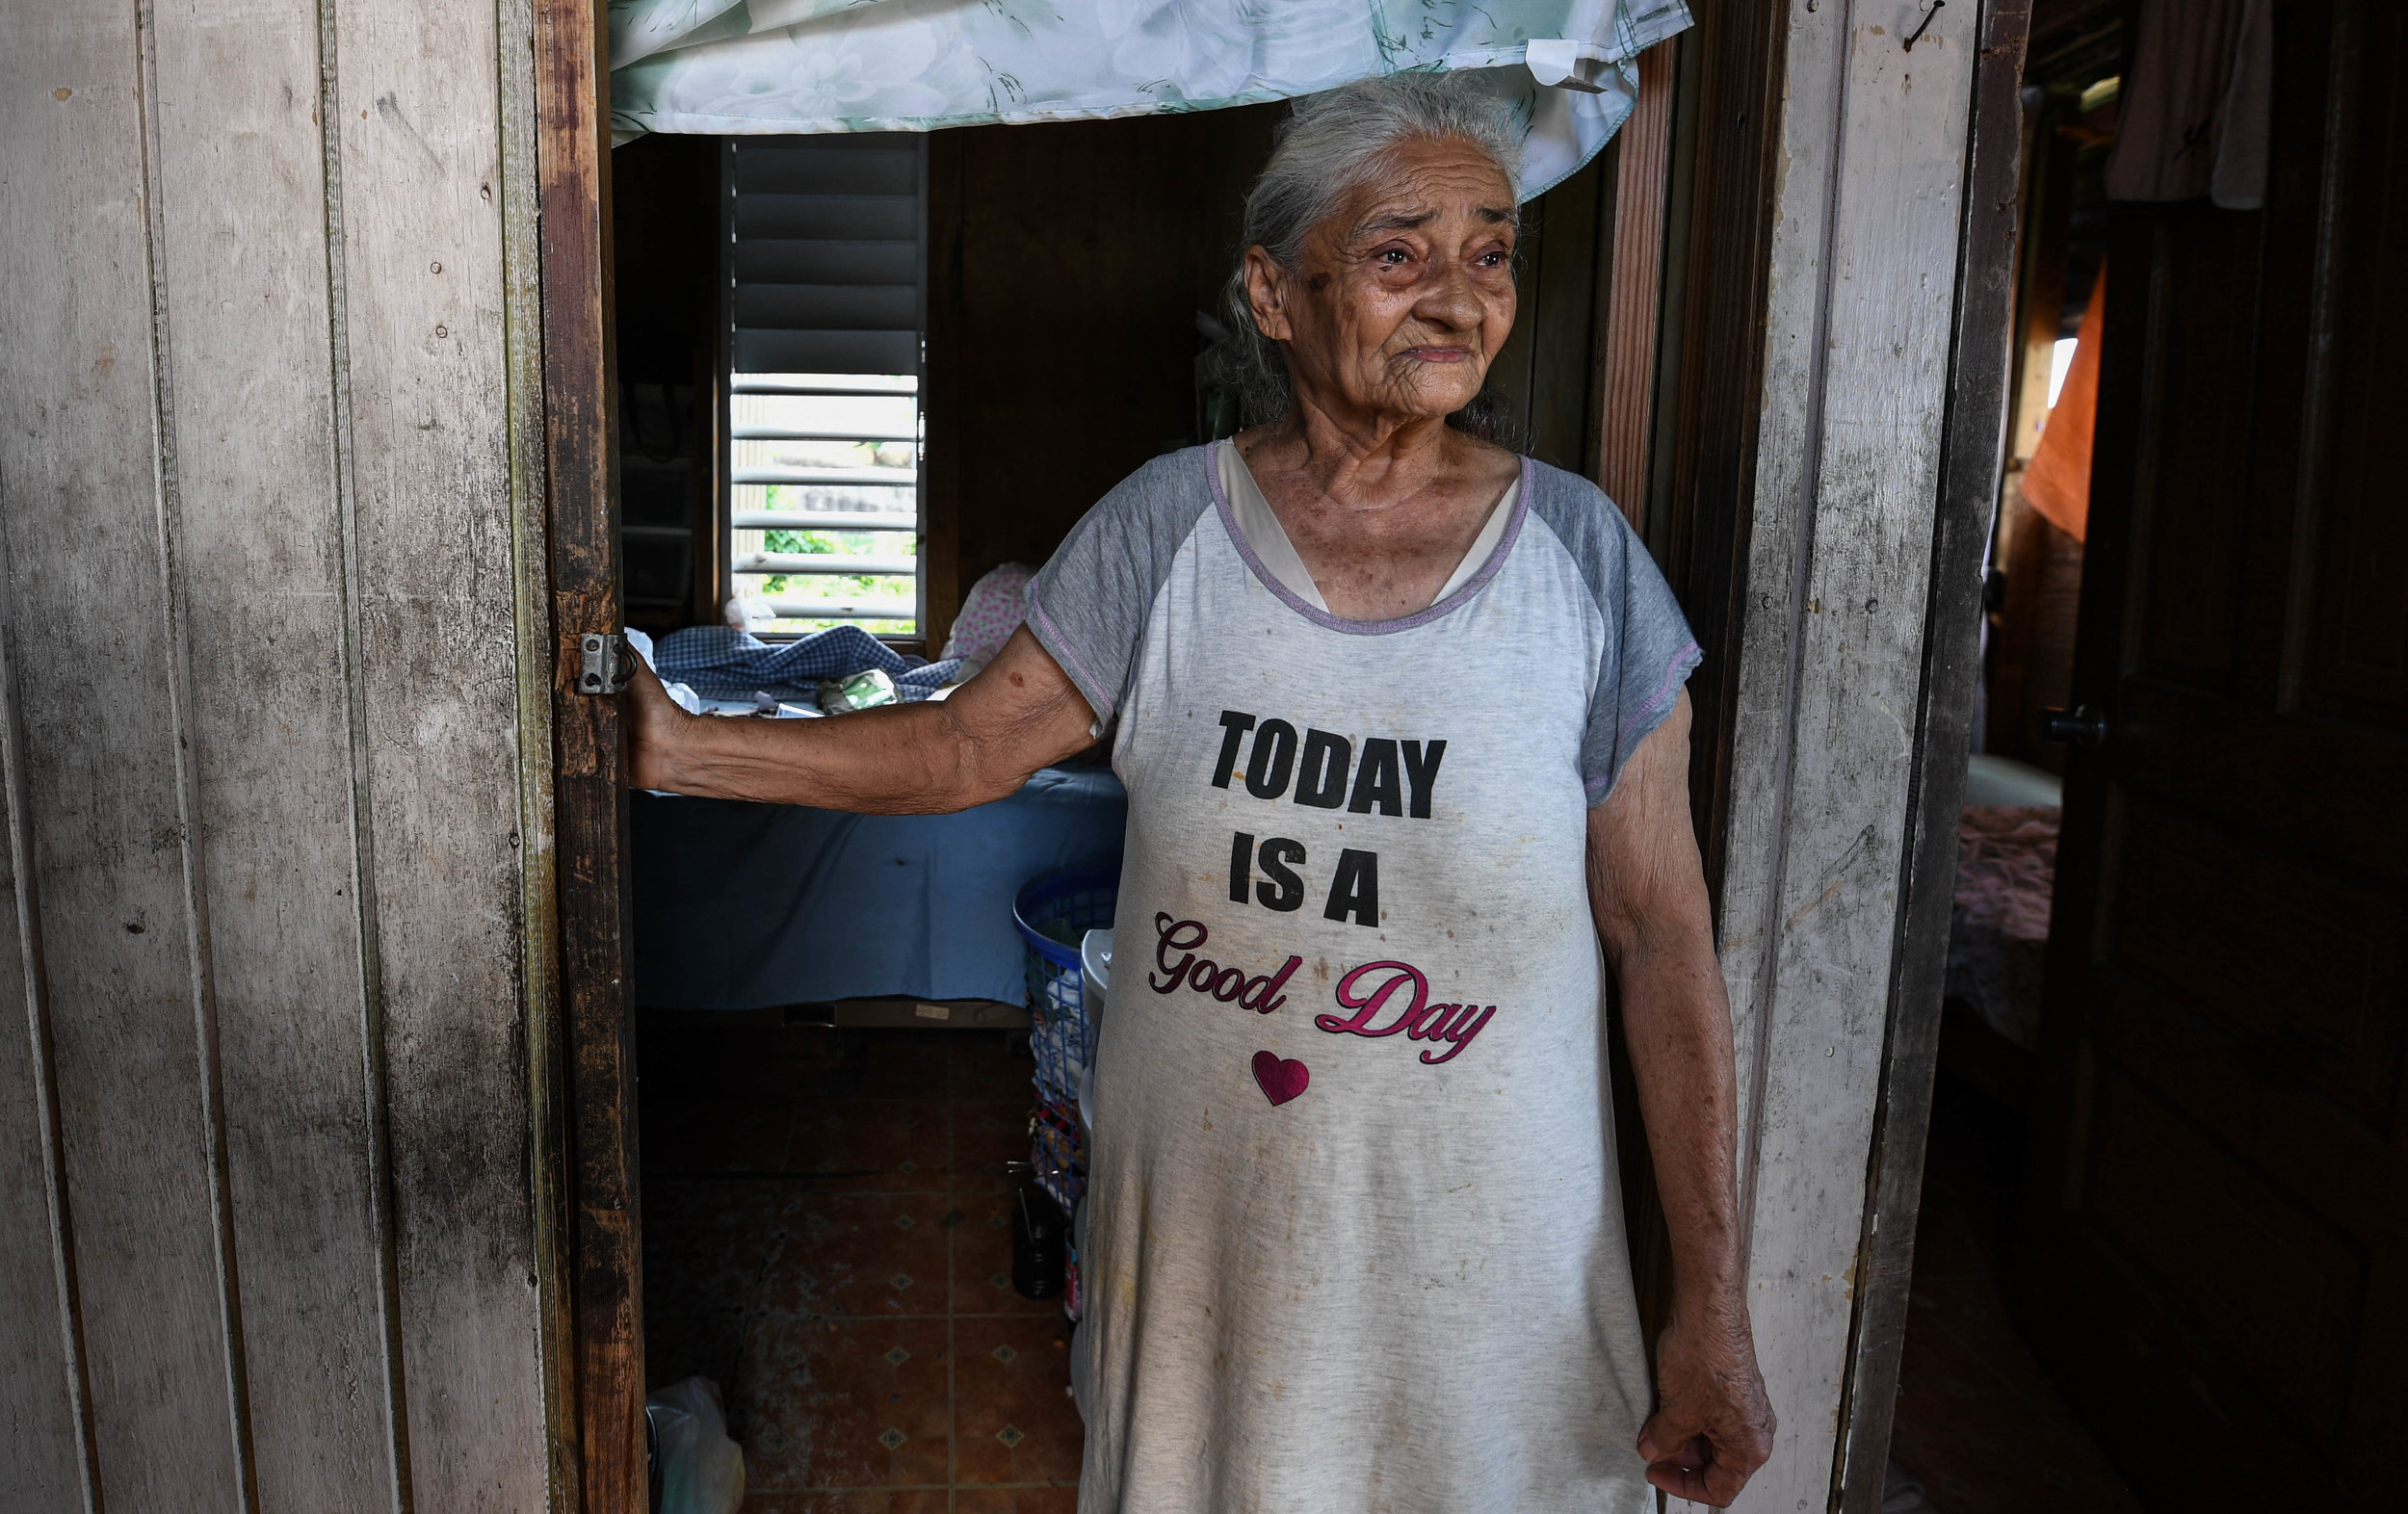 "Paola Ortiz, 84, has been alone for three months, wearing the single item of clothing she has left, a T-shirt that says, ""Today is a good day."" In the mountain village Moca with no car, she has not yet received aid. ""I've always been poor,"" said Ortiz, ""but I knew I would survive. Now, I am not sure."" After high winds took her house's walls, she rebuilt it with what was available, plywood and blue tarp. ""I have tarp, but the water still gets in; it rains on me every day."" Without power, Ortiz is unable to fill out the online form that alerts FEMA that she needs aid. Ortiz wants the world to know, ""The Puerto Ricans in the mountains are still here; tell them we need help."""